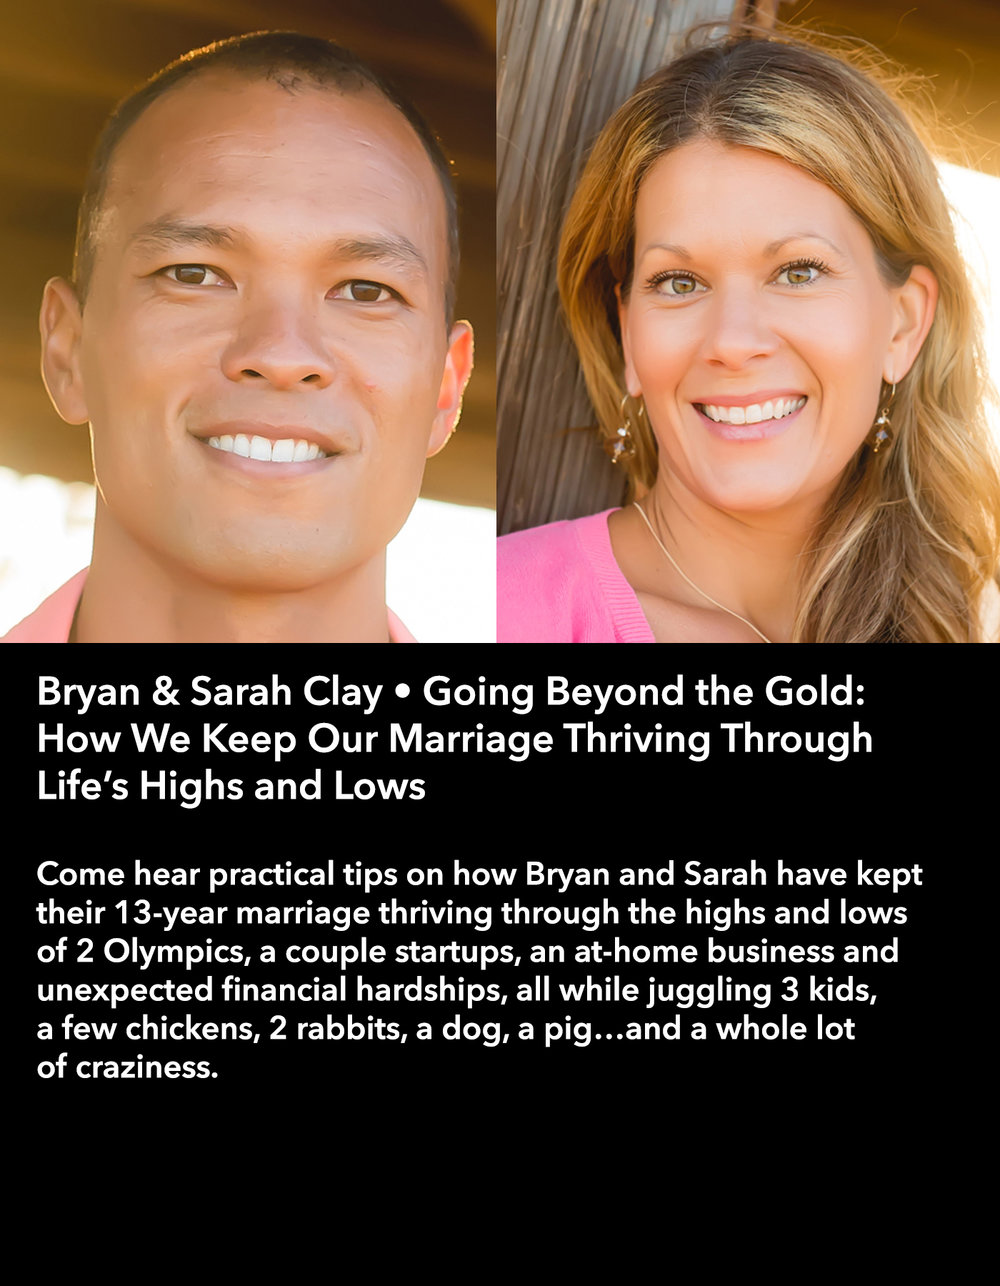 Bryan & Sarah Clay • Going Beyond the Gold: How We Keep Our Marriage Thriving Through Life's Highs and Lows • Friday Afternoon, March 17 • 3:30 – 4:45 pm